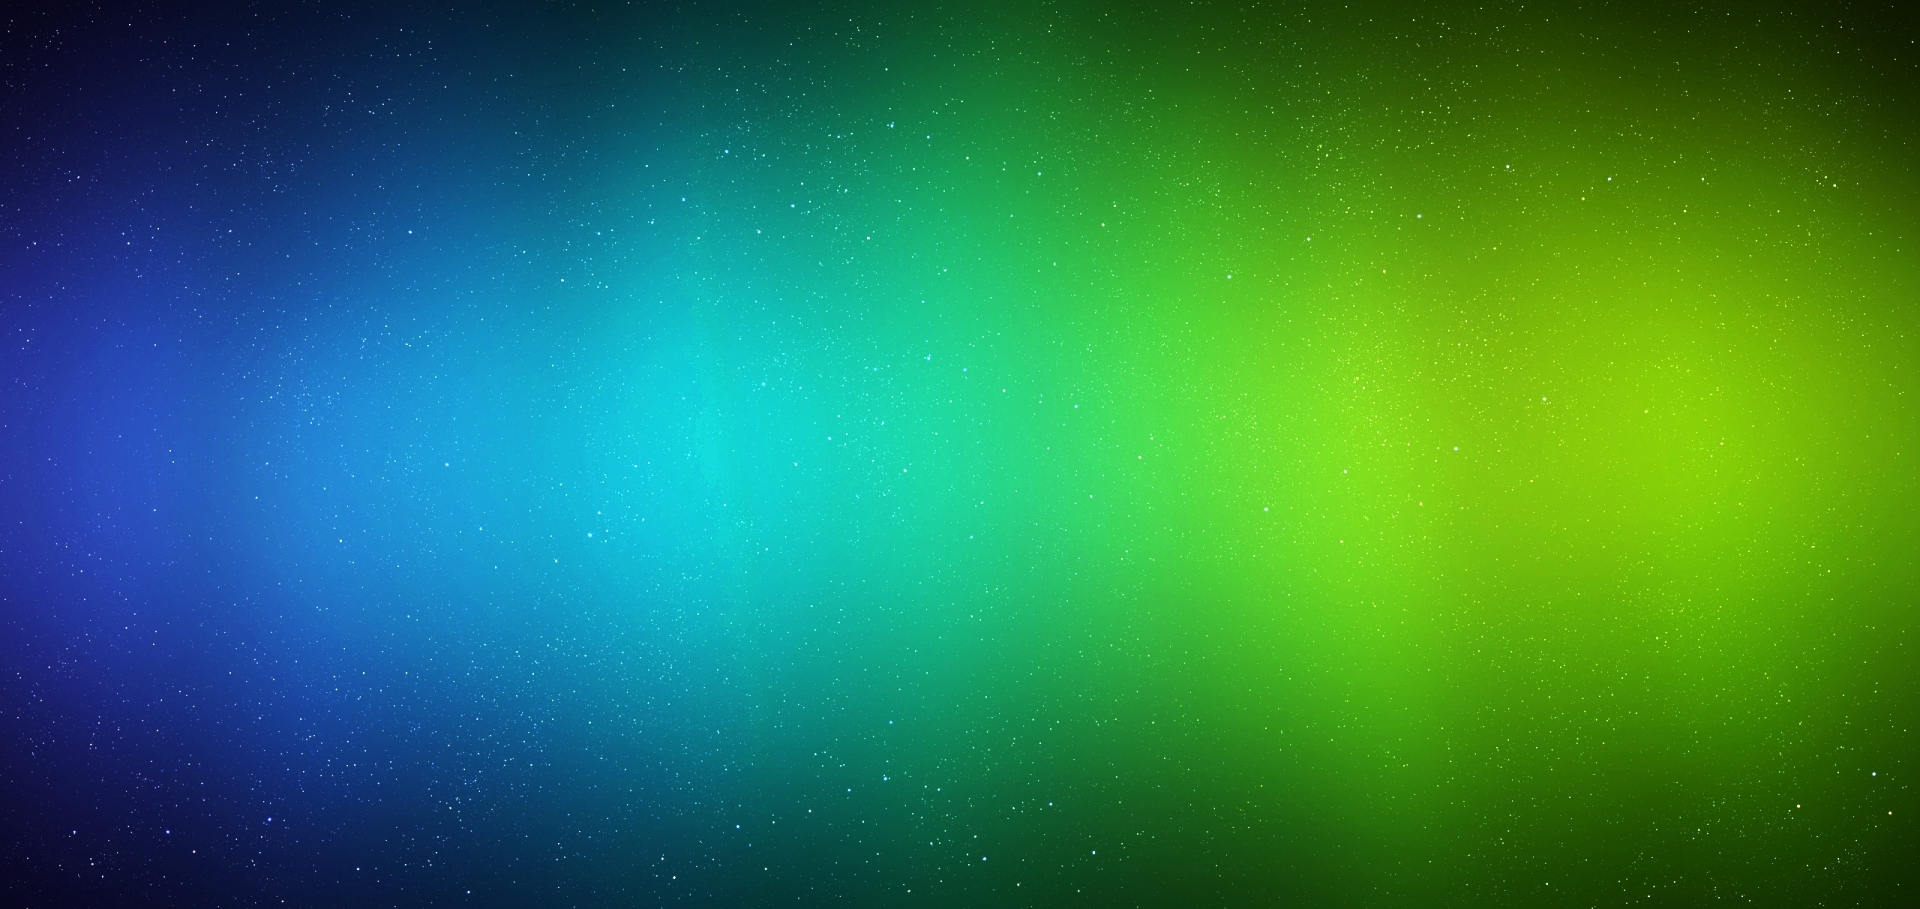 abstract wallpaper blue and green free images at clker